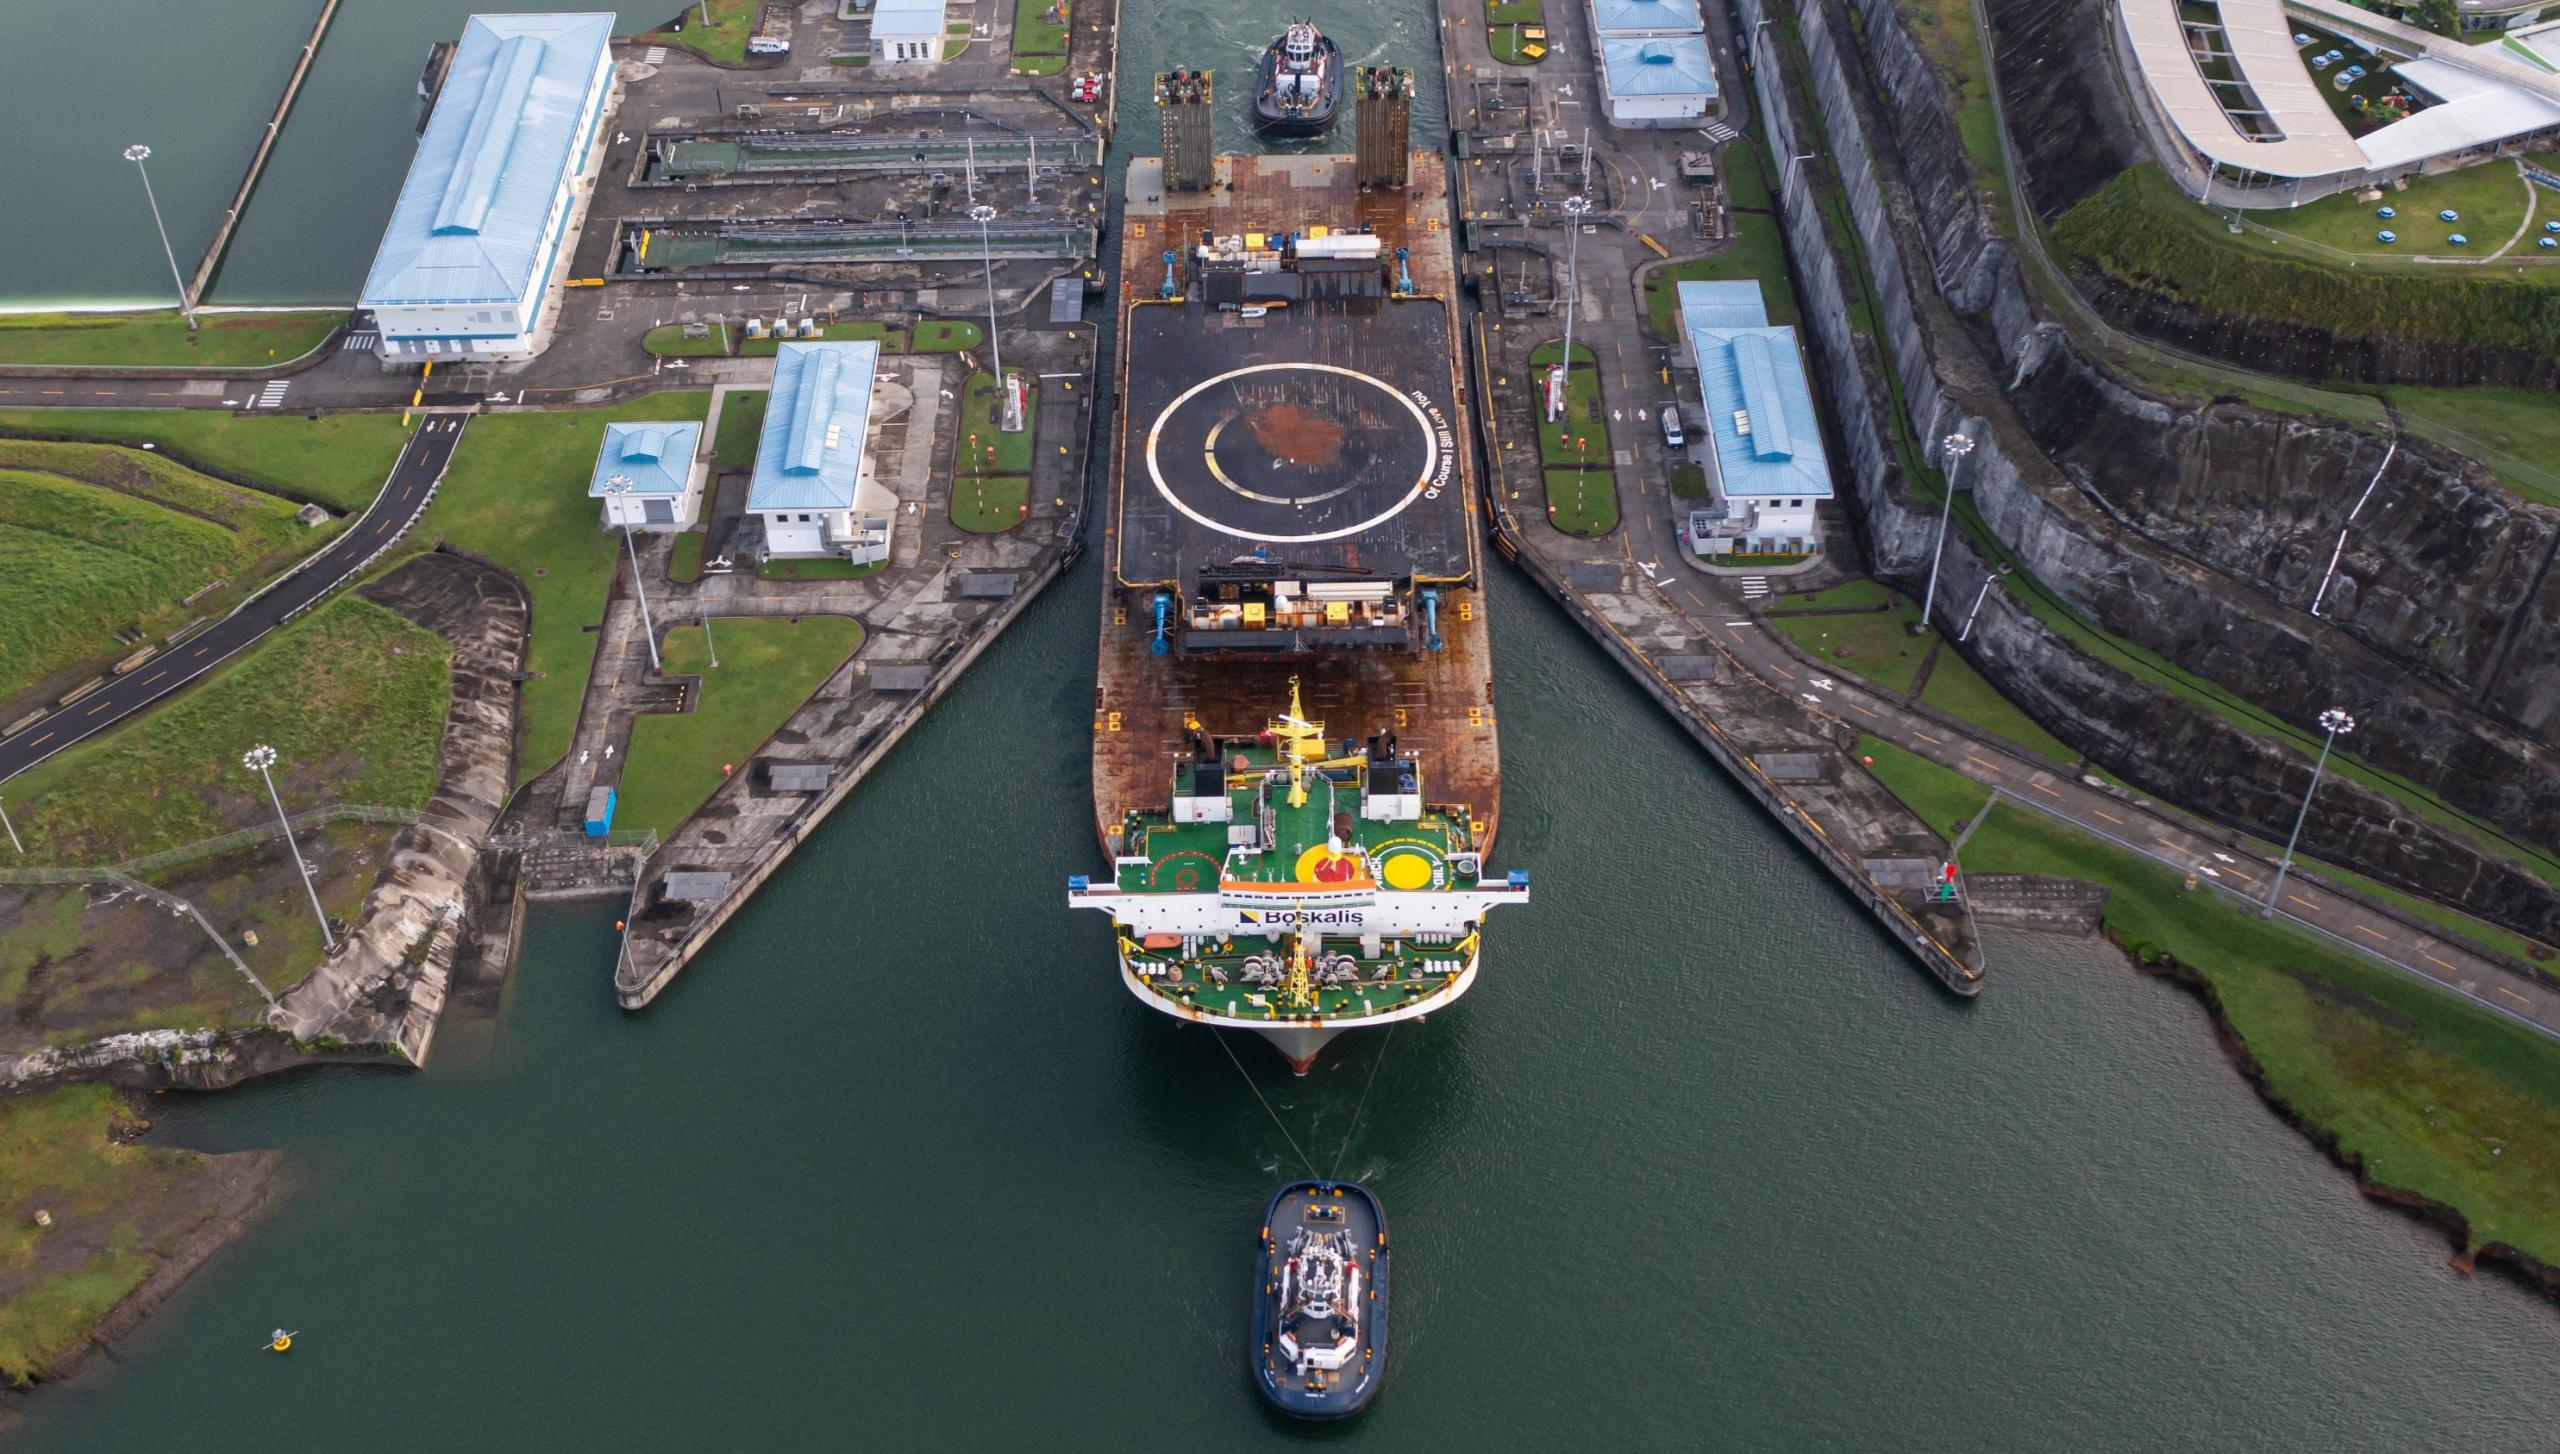 drone ship OCISLY canal transit 062521 (@ThePanamaCanal) 5 crop (c)